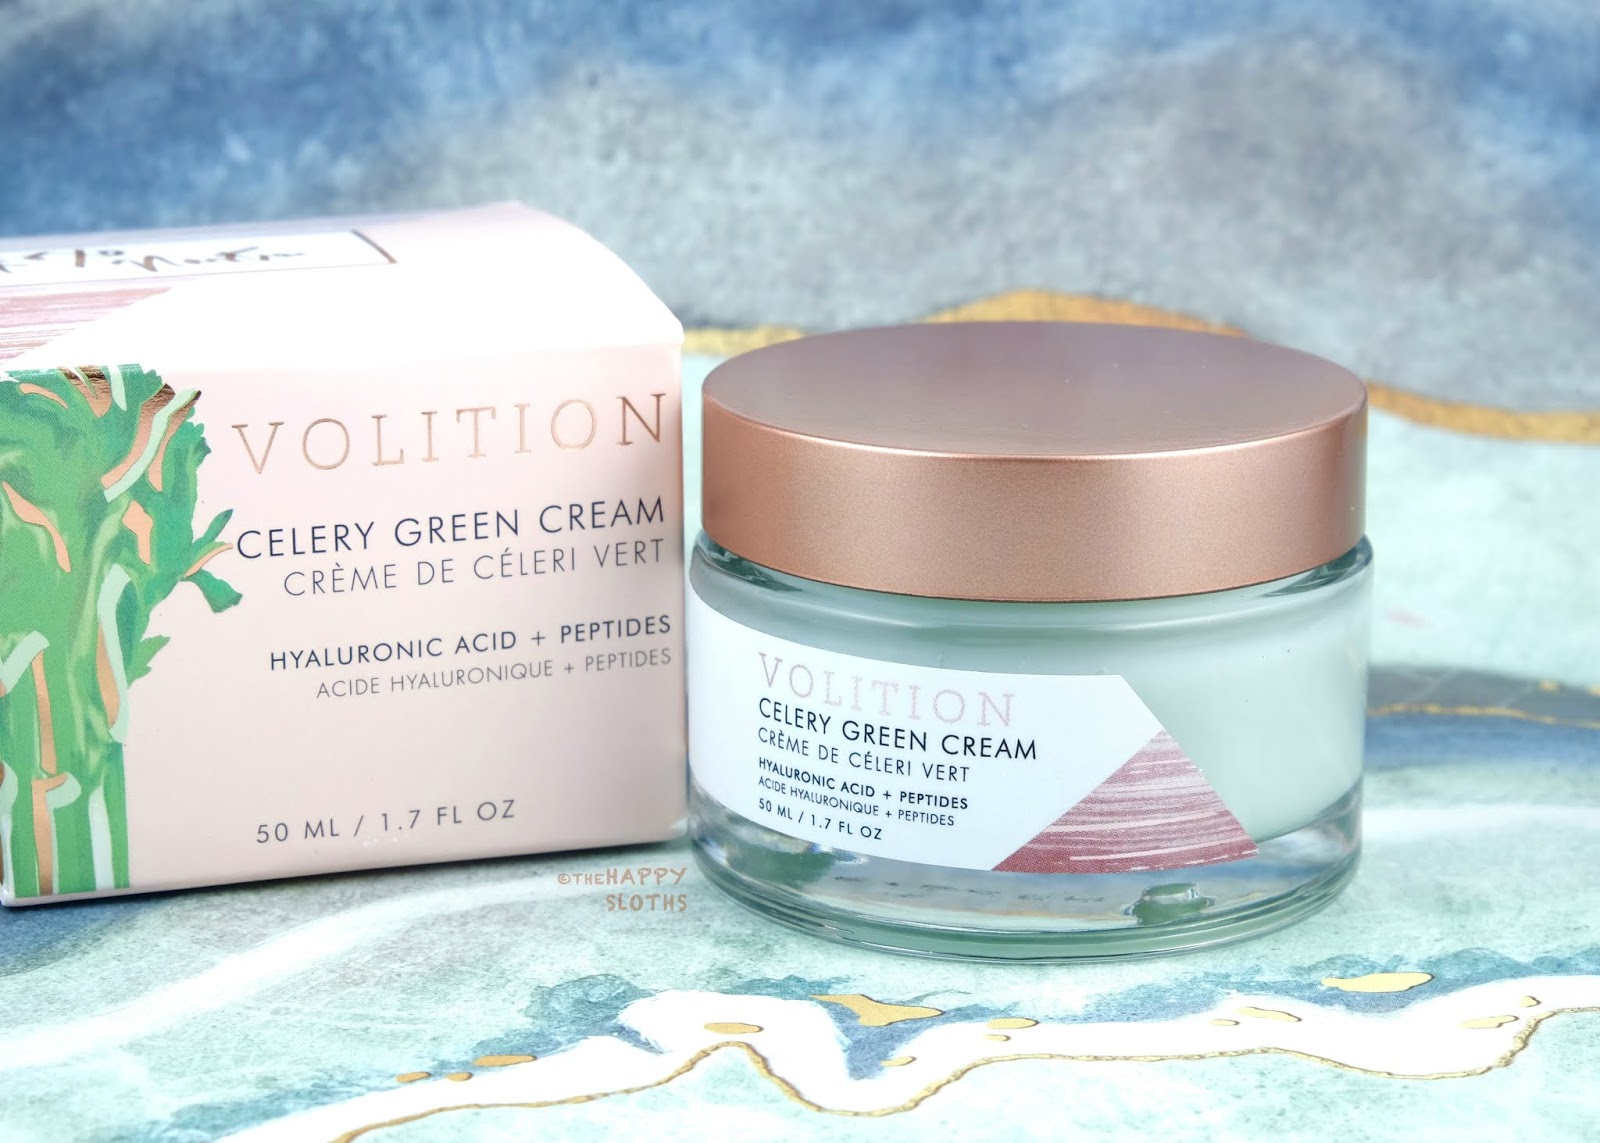 Volition Beauty | Celery Green Cream with Hyaluronic Acid + Peptides: Review and Swatches